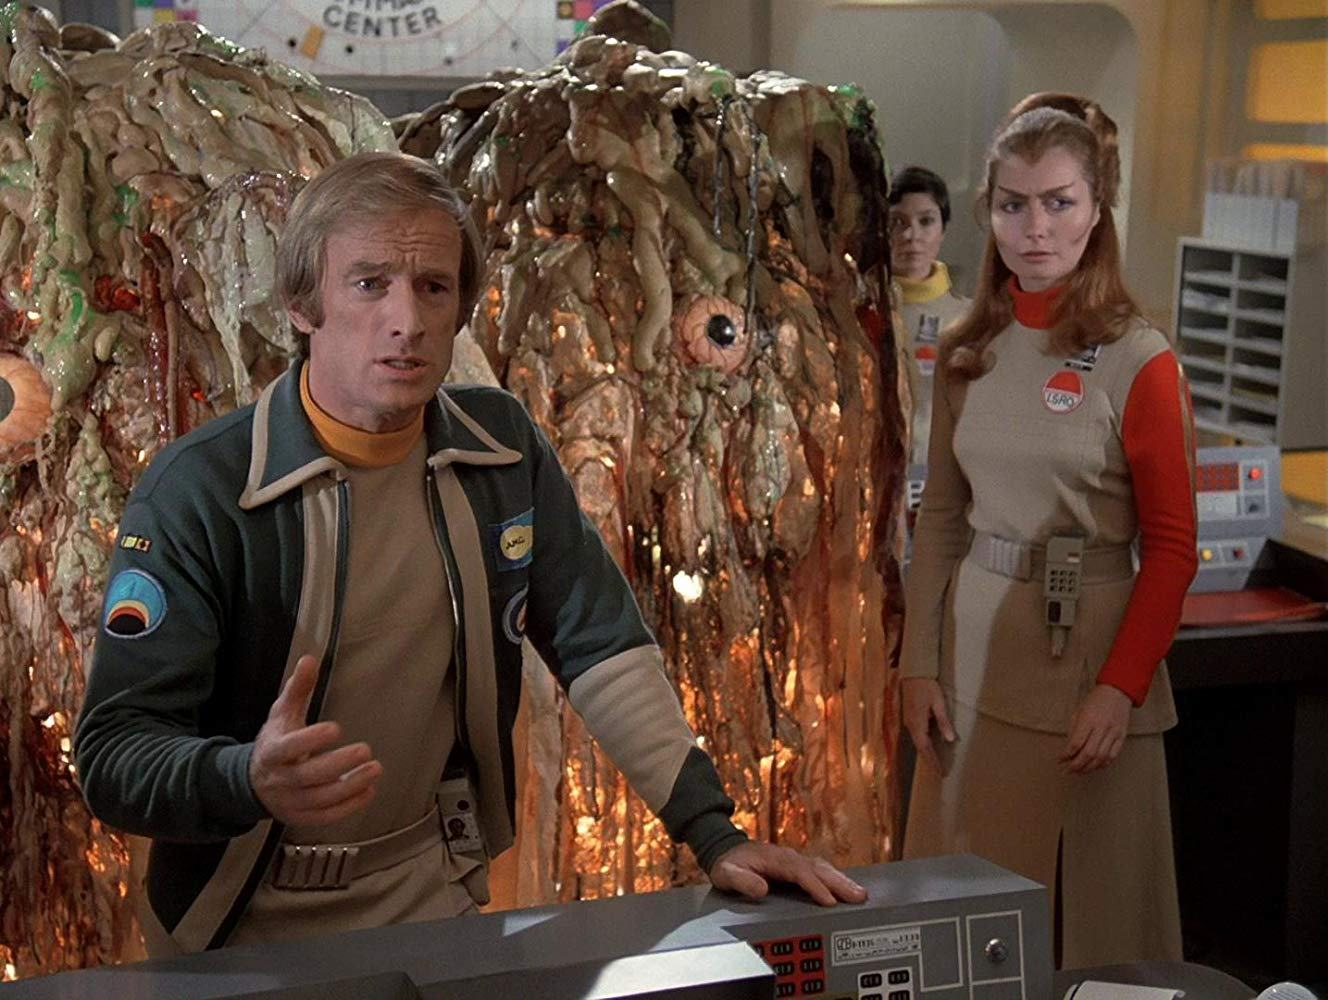 Alan Carter (Nick Tate), Sandra Benes (Zienia Merton) and Maya (Catherine Schell) surrounded by the aliens in Destination Moonbase-Alpha (1979)